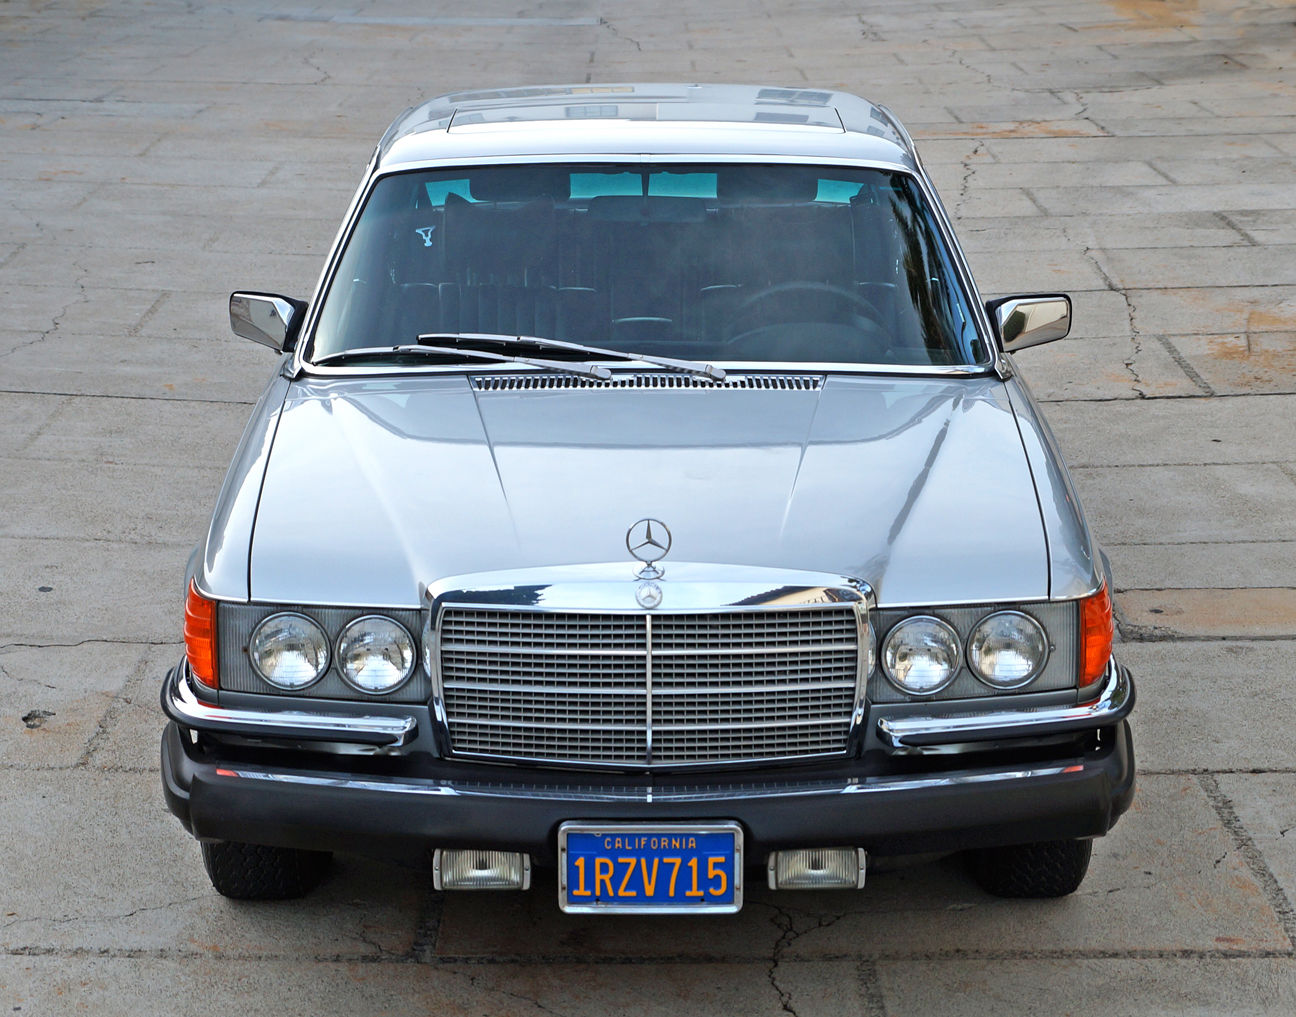 1978 Mercedes Benz 450sel 6 9 62kmi Gorgeous Original